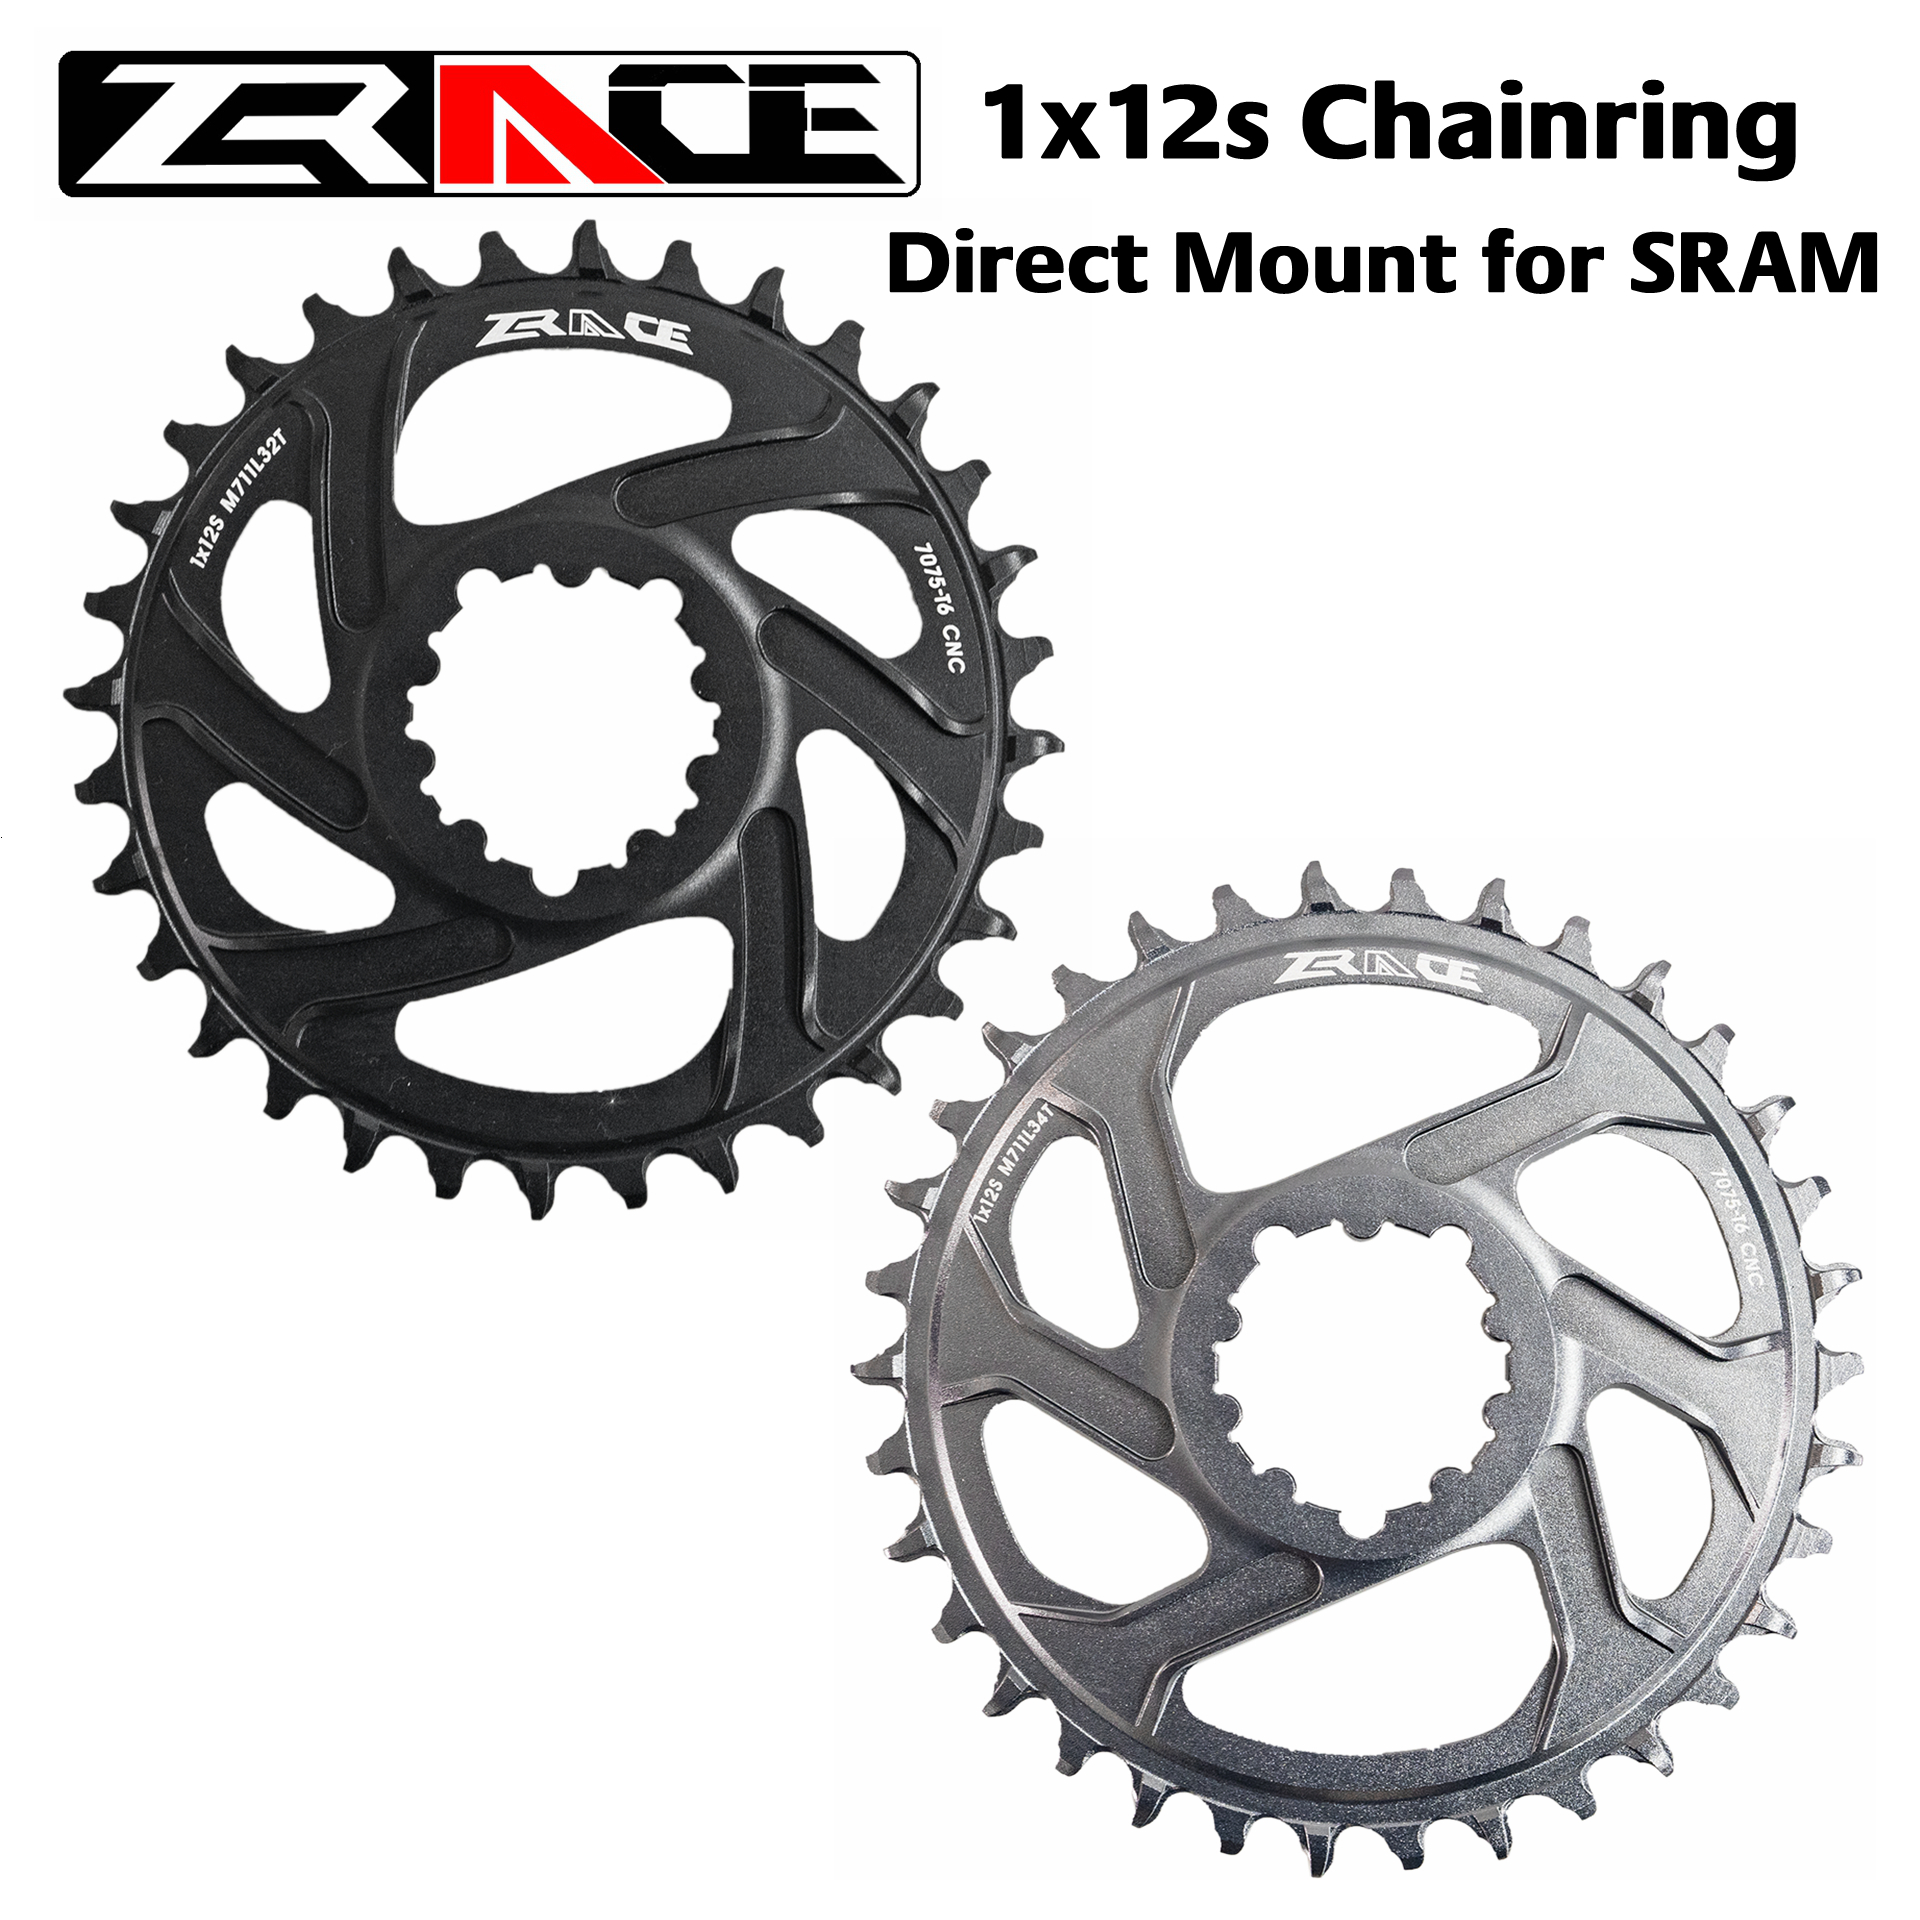 ZRACE 1 x 12s Chainwheel, 28/30/32/34/36T 7075AL Vickers-hardness 21, offset 6mm, for SRAM Direct Mount Crank, compatible Eagle image